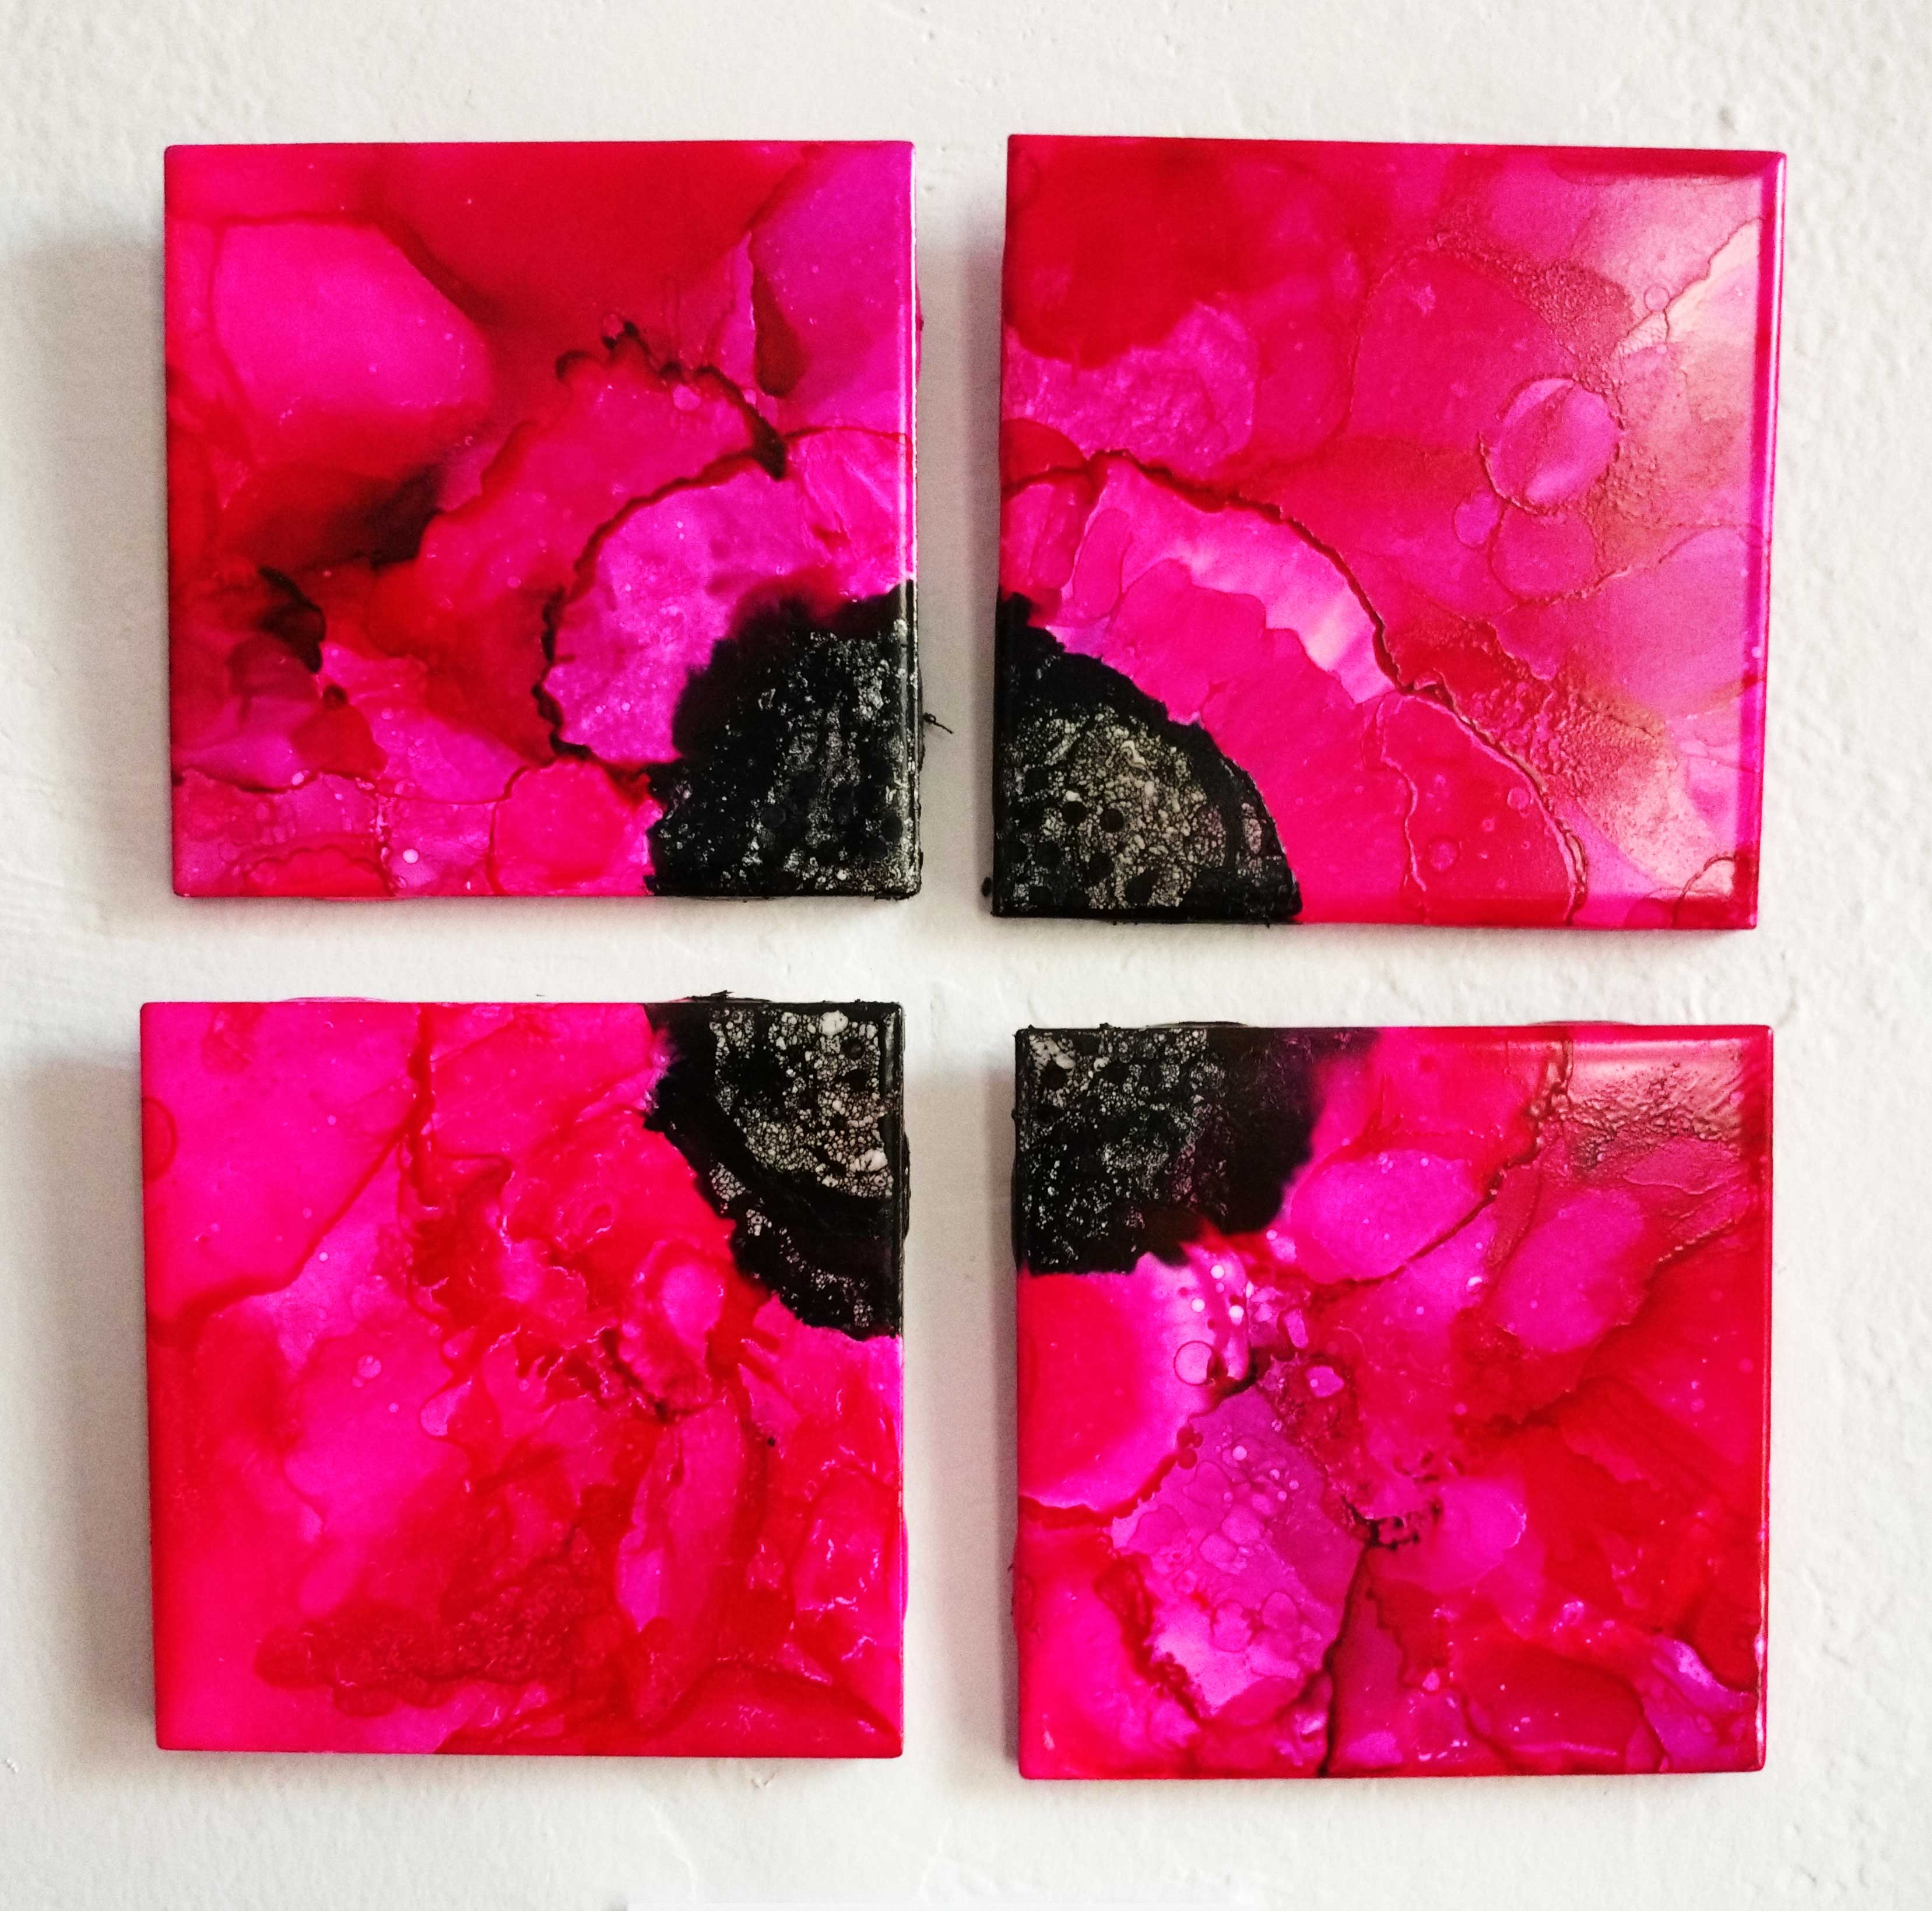 'Pink Floral Series' Alcohol Ink on Tile by Barbara Achord